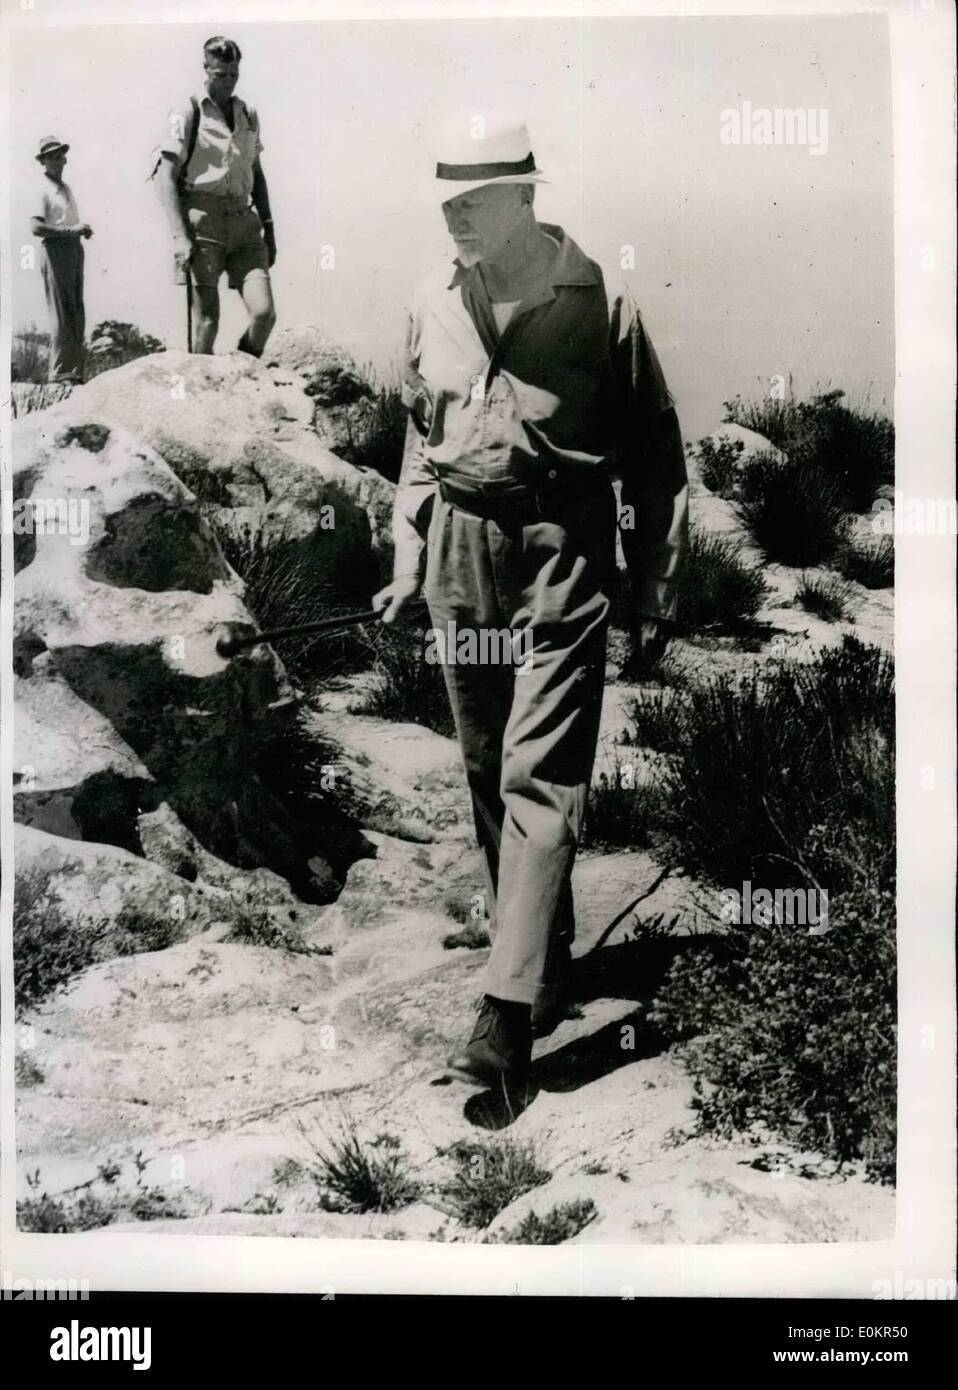 Apr. 04, 1946 - Field Marshal, the Right Hon. J.C. Smuts accompanied by Mountain climbers and a ranger, climbed over 3,000 ft. to the Summit of Table Mountain where he attended the Memorial Service to Mountaineers, a service was conducted by the Rev F.F. Komlosy, M.C., R.A.F. Photo shows after climbing over 3,000 ft. the grand old man struts along the top of the mountain towards Mclear's Beacon, the amphtheatre which he calls Cape Town Cathedral. - Stock Image